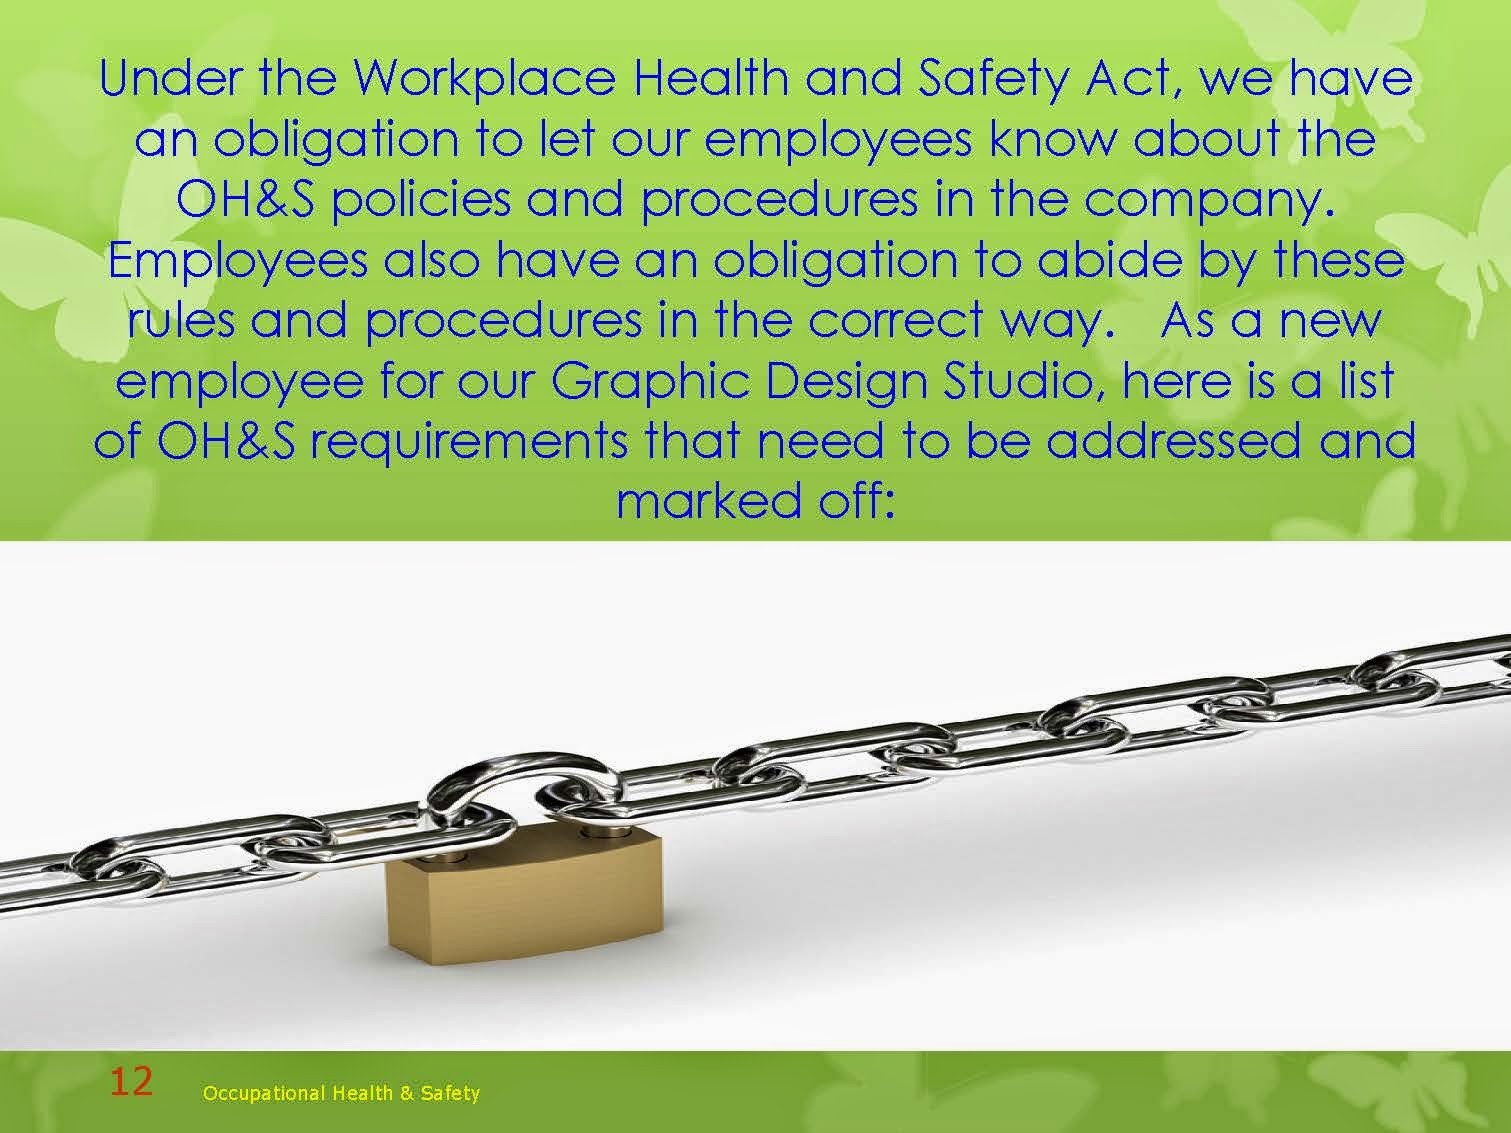 OCCUPATIONAL HEALTH AND SAFETY POLICIES